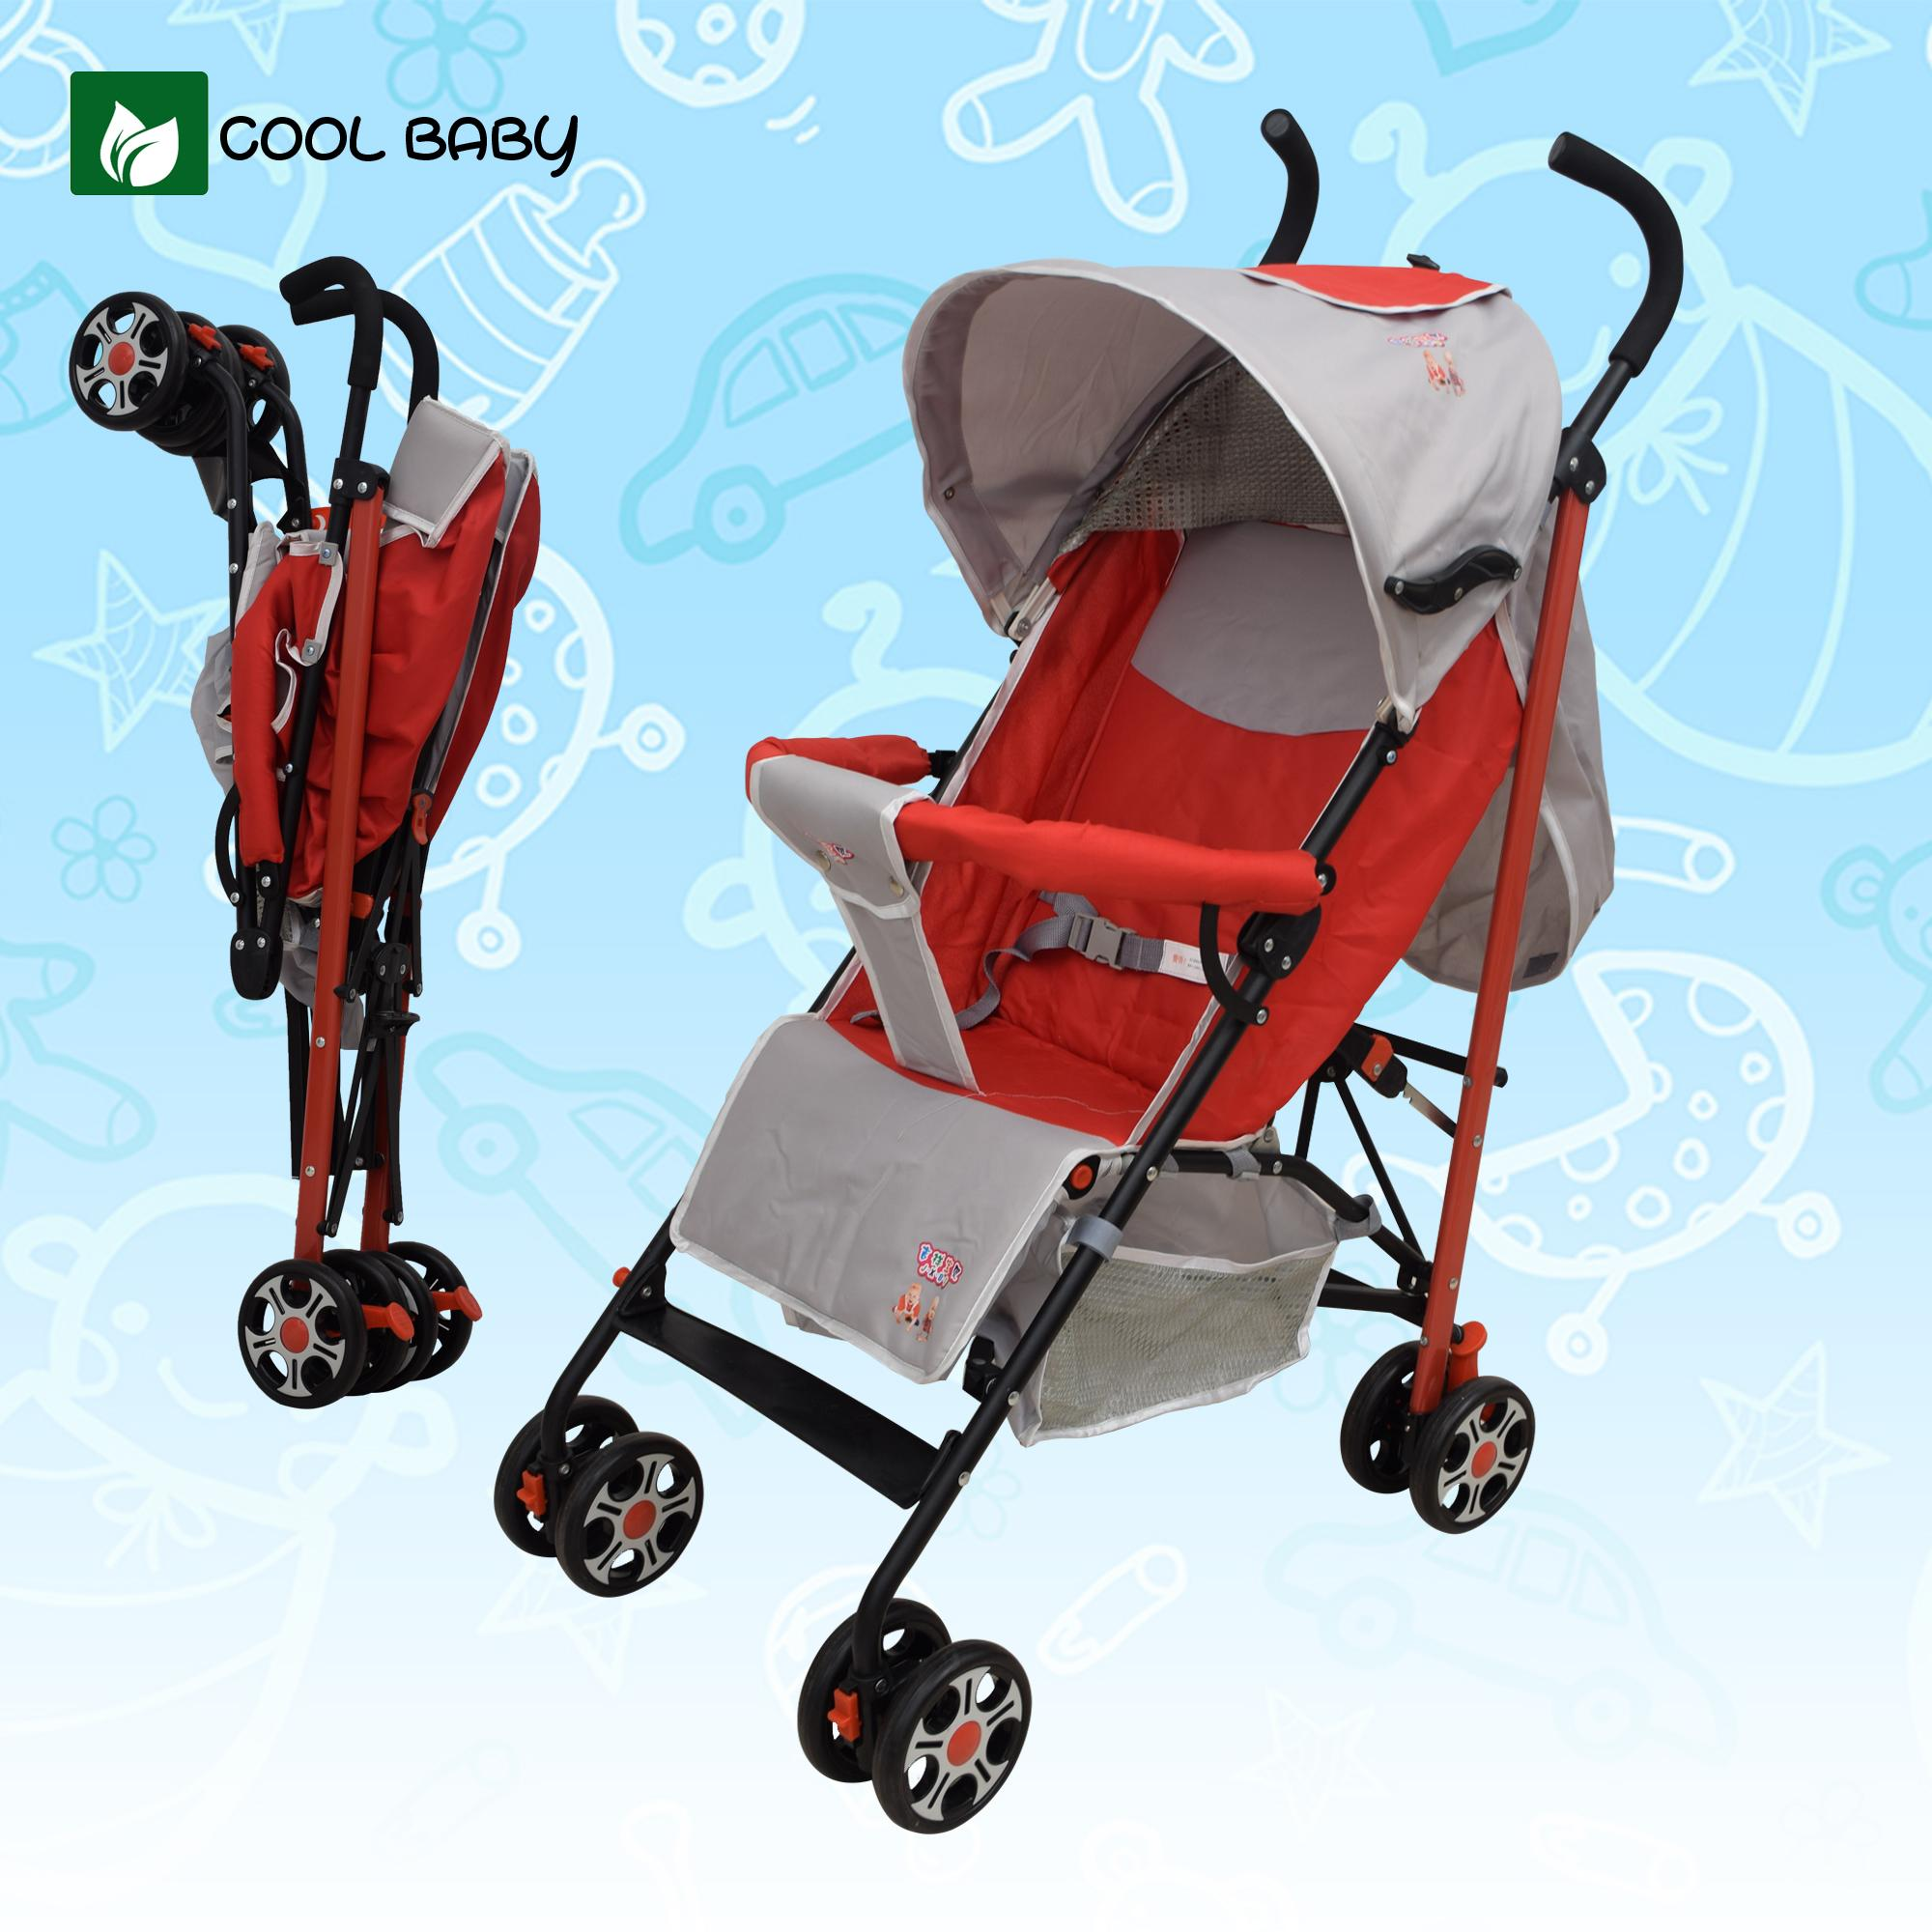 Cool Baby 818 Baby Stroller Portable Folding Infant Umbrella Stroller By Cool Baby.